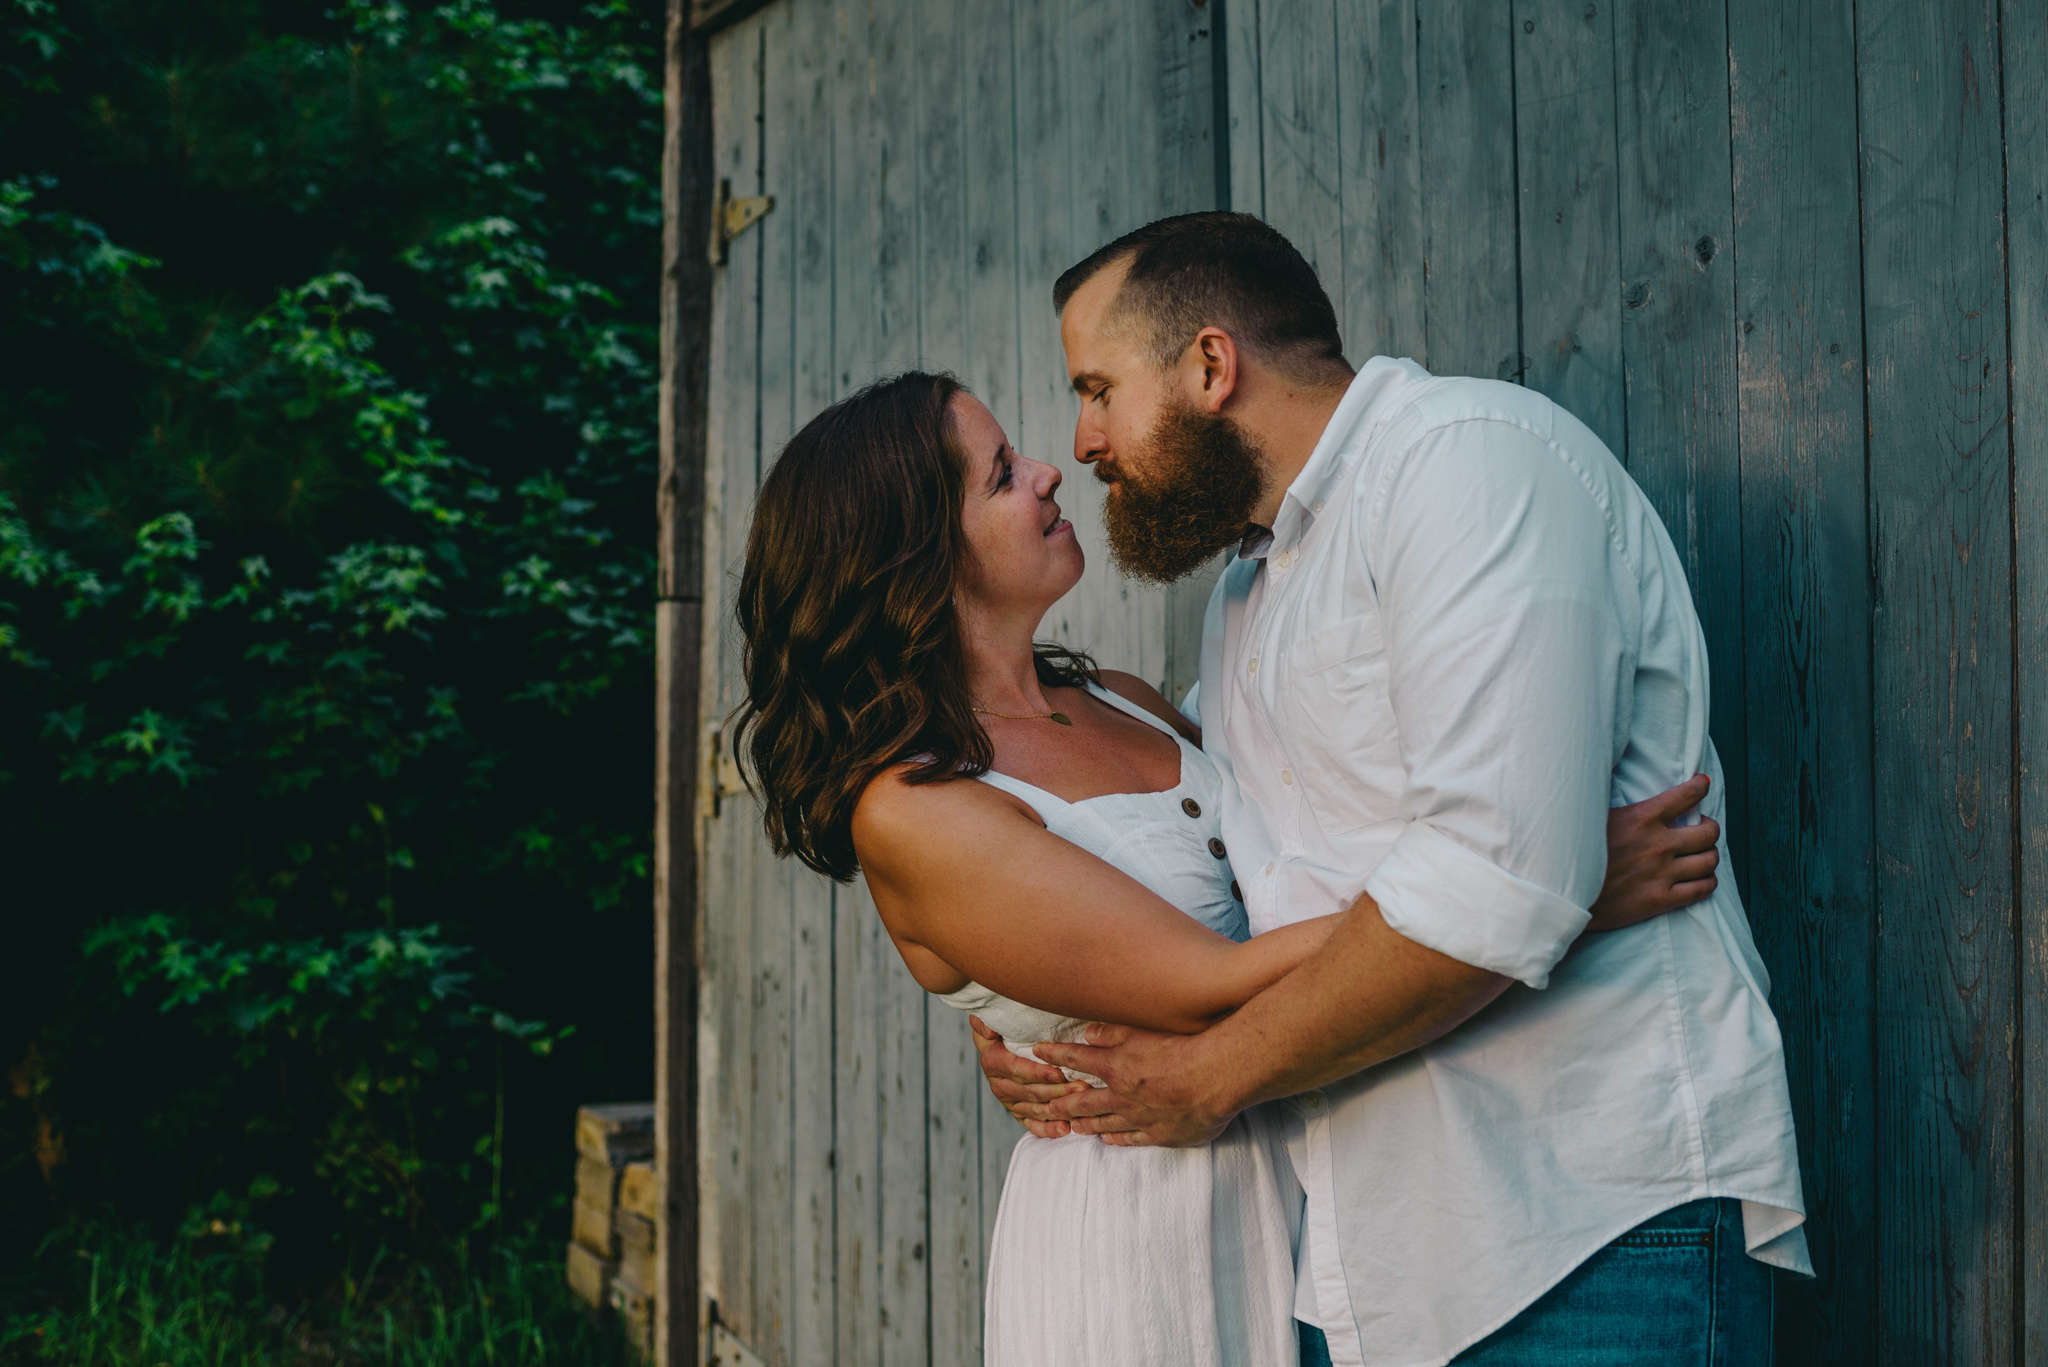 The couple get ready for a kiss by the barn at sunset for their engagement pictures with Rose Trail Images at Horseshoe Park in Wake Forest, North Carolina.